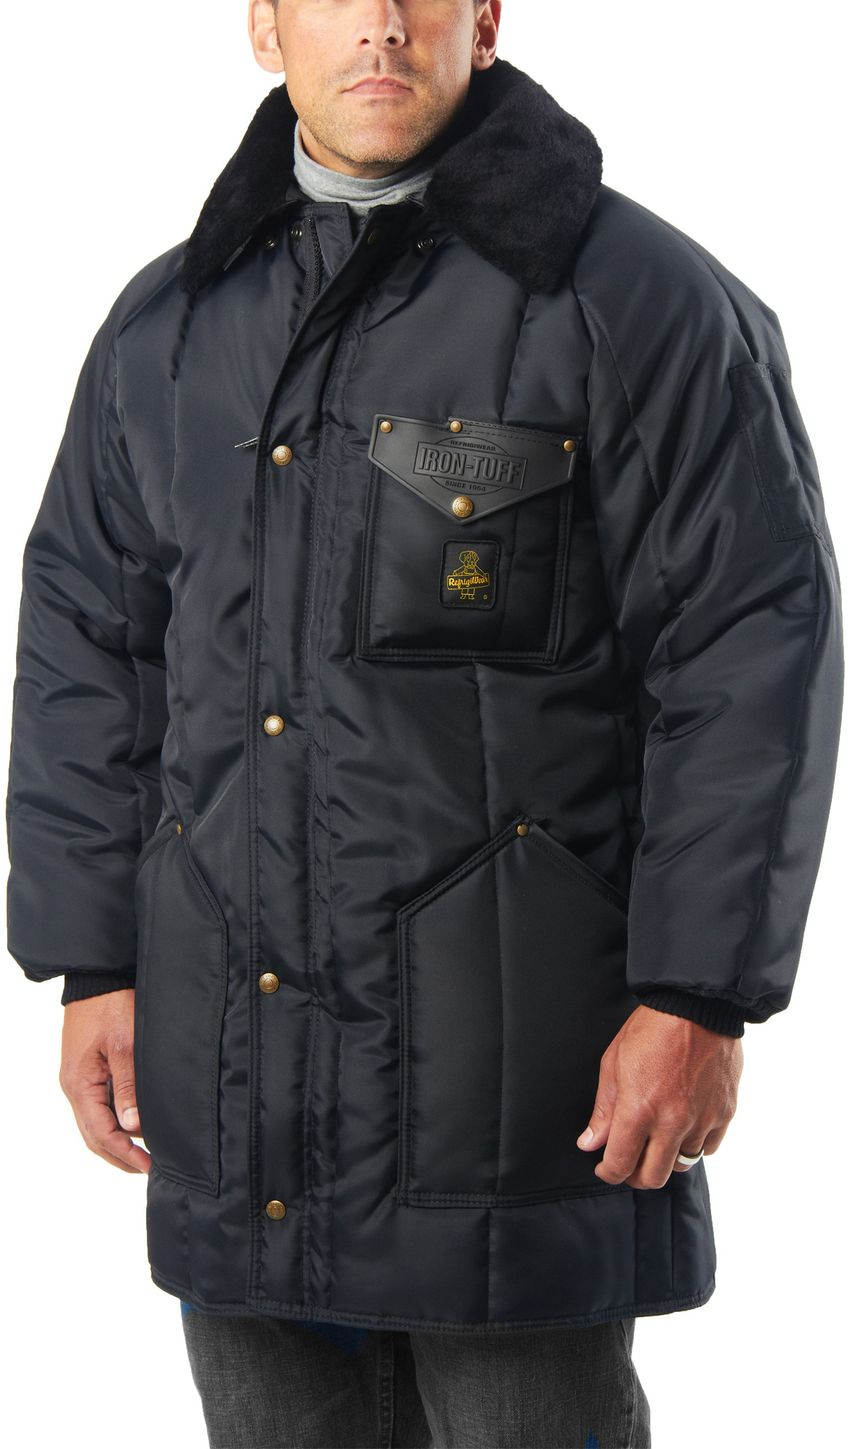 RefrigiWea 0361 Iron-Tuff Winterseal Cold Weather Work Coat Thigh Length Example